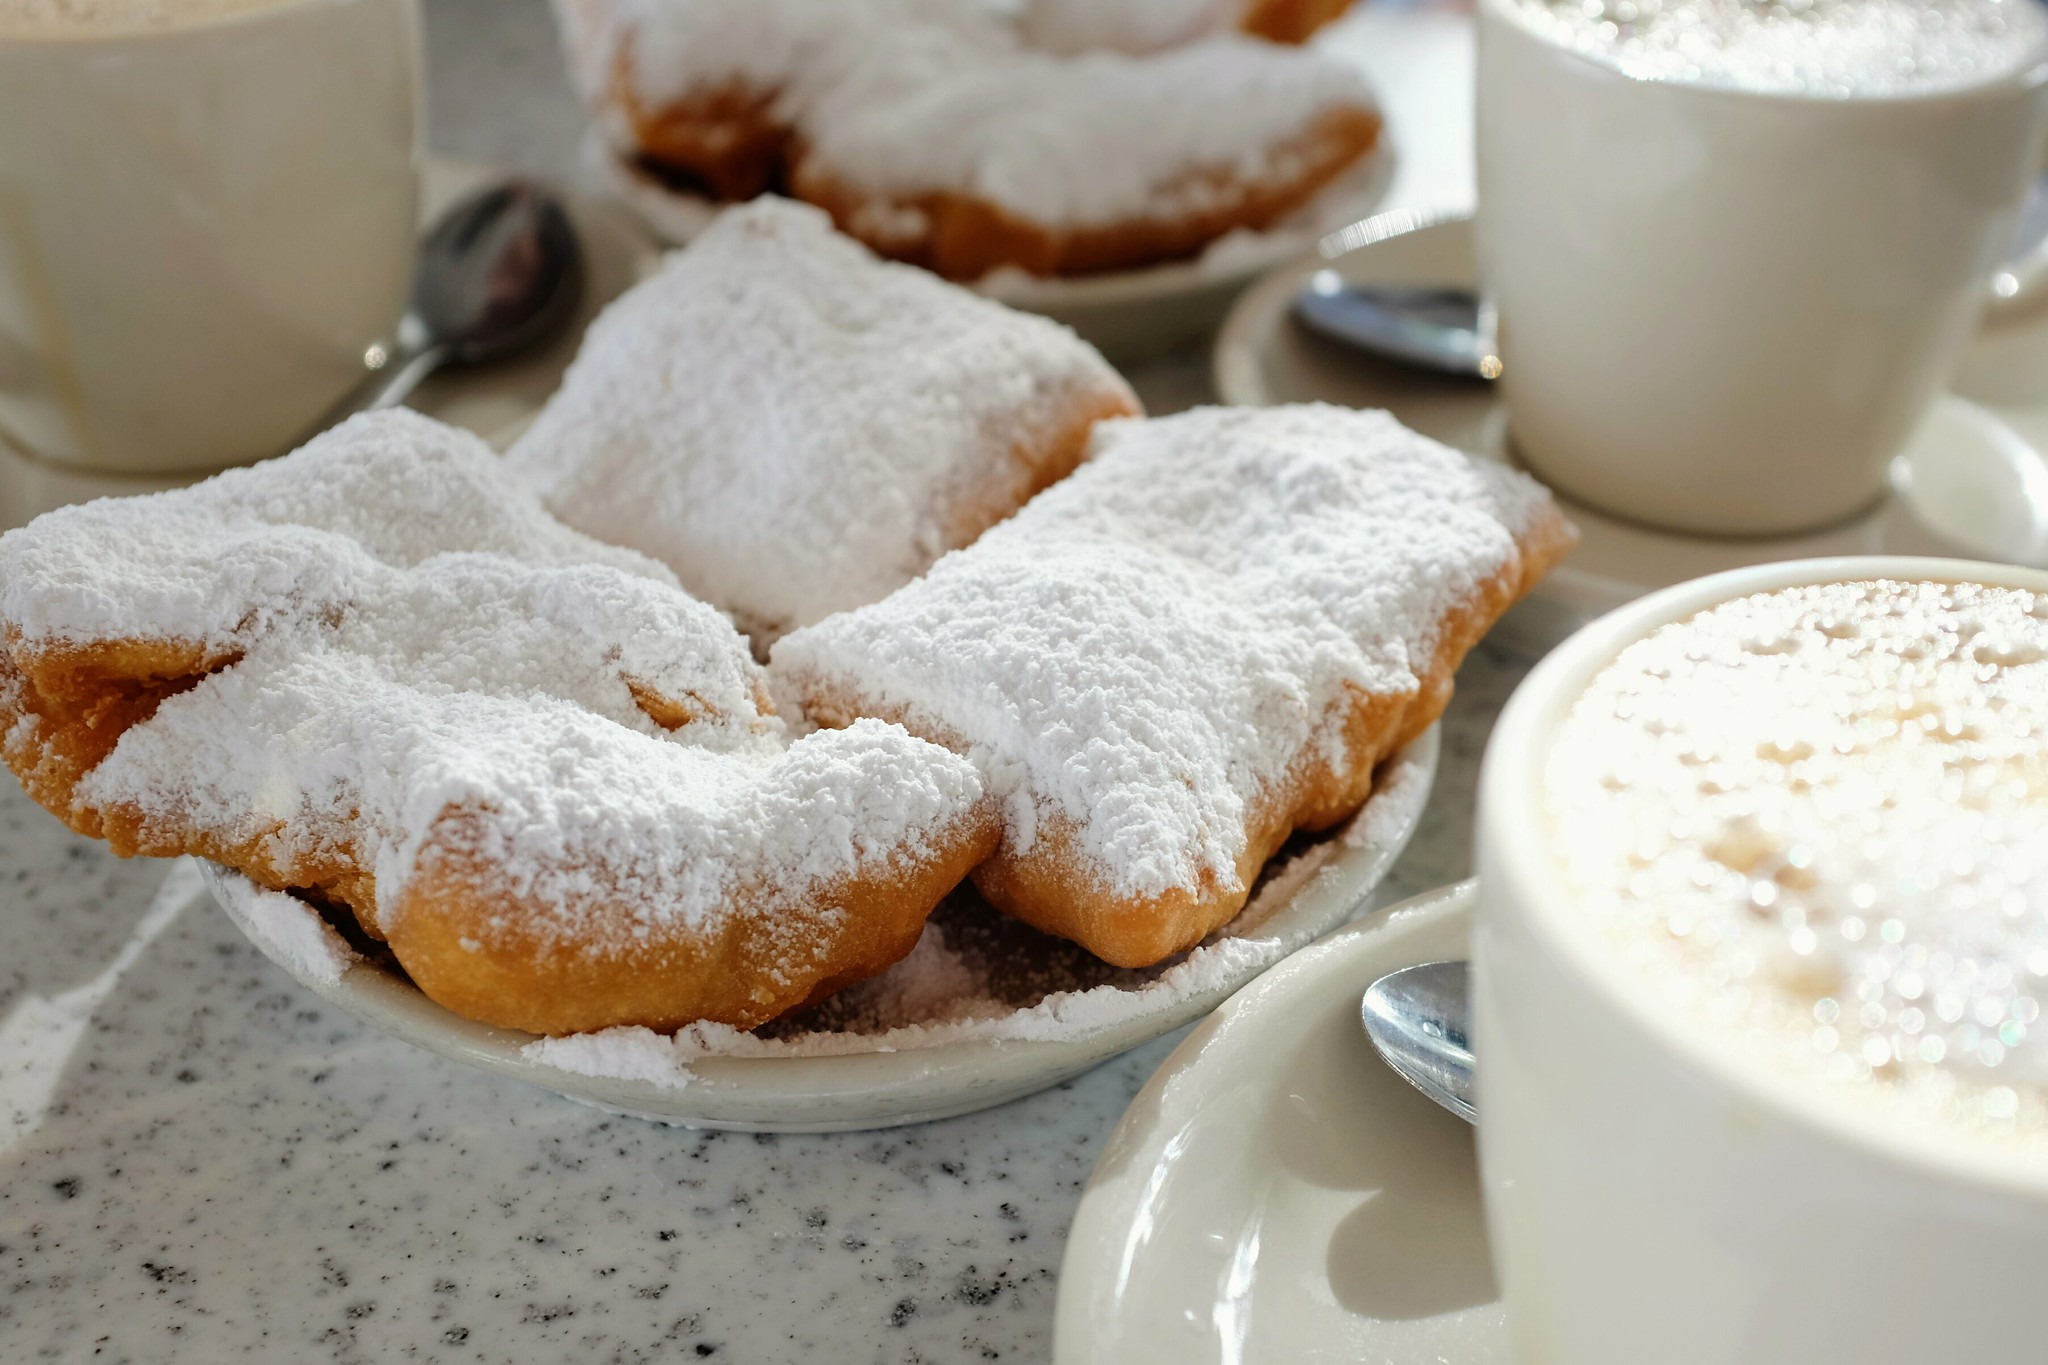 Best Local Food in New Orleans